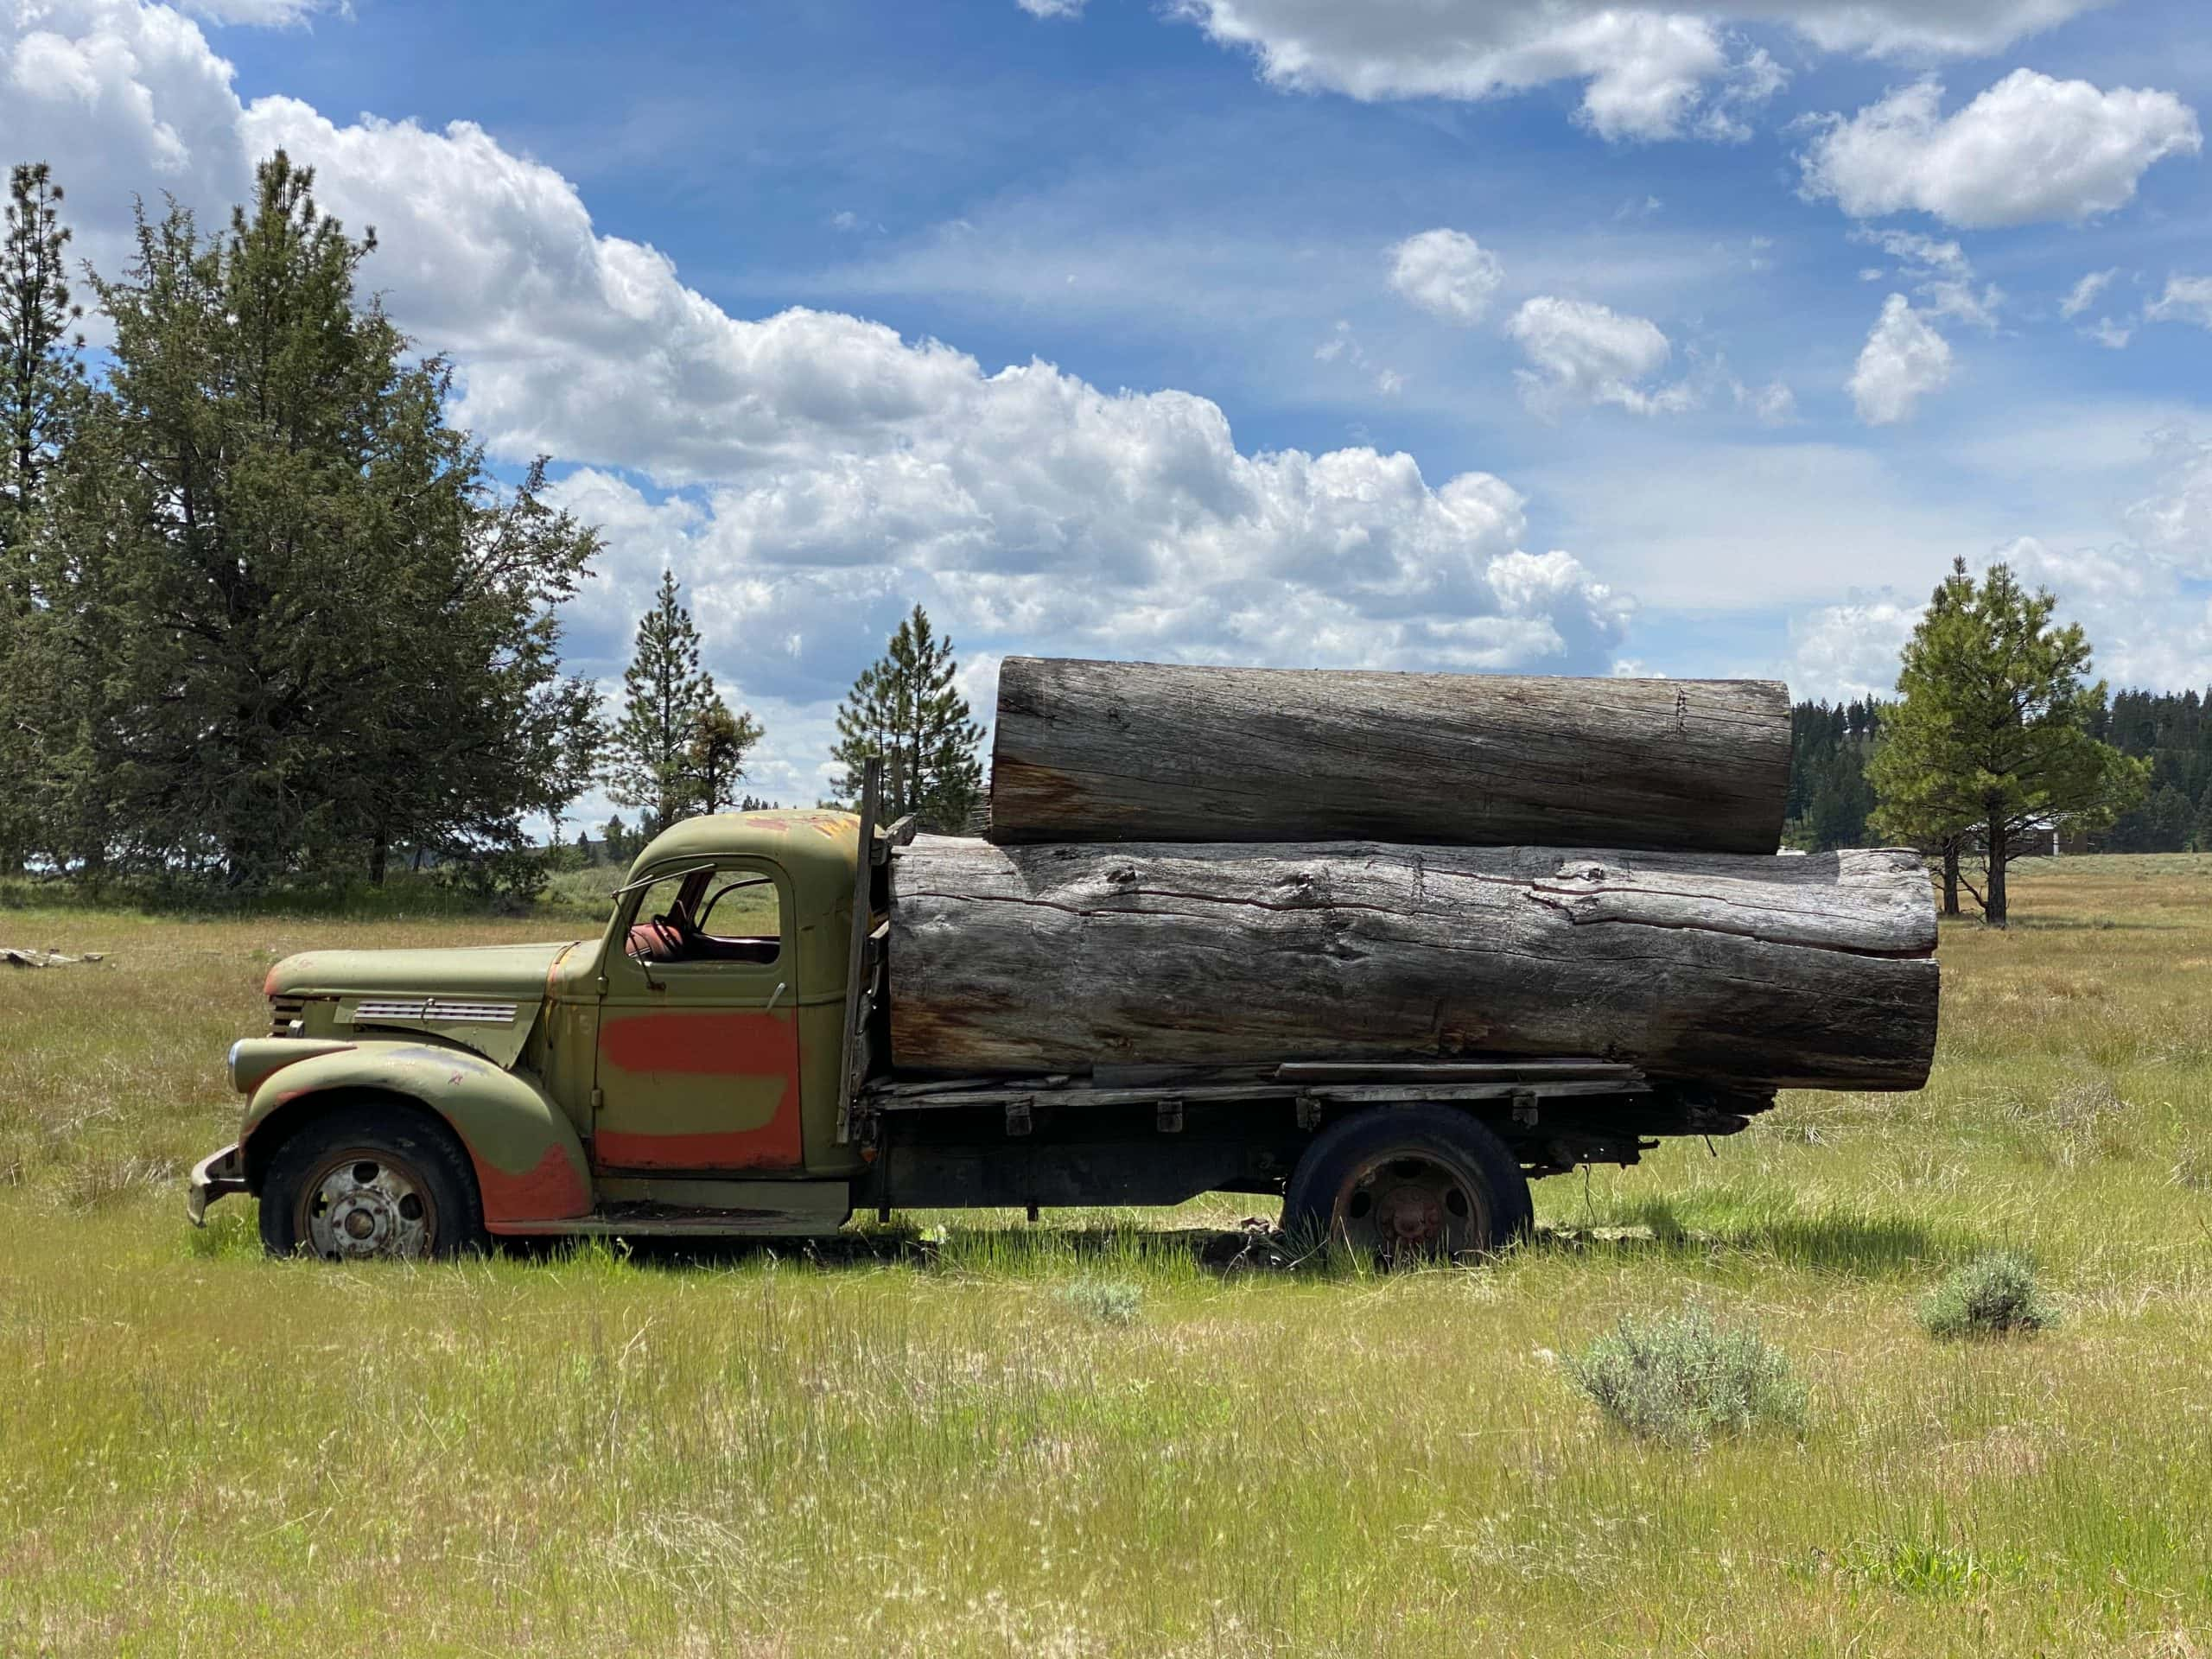 Old truck with big logs on it in meadow near Six Shooter ranch in Mitchell, Oregon.